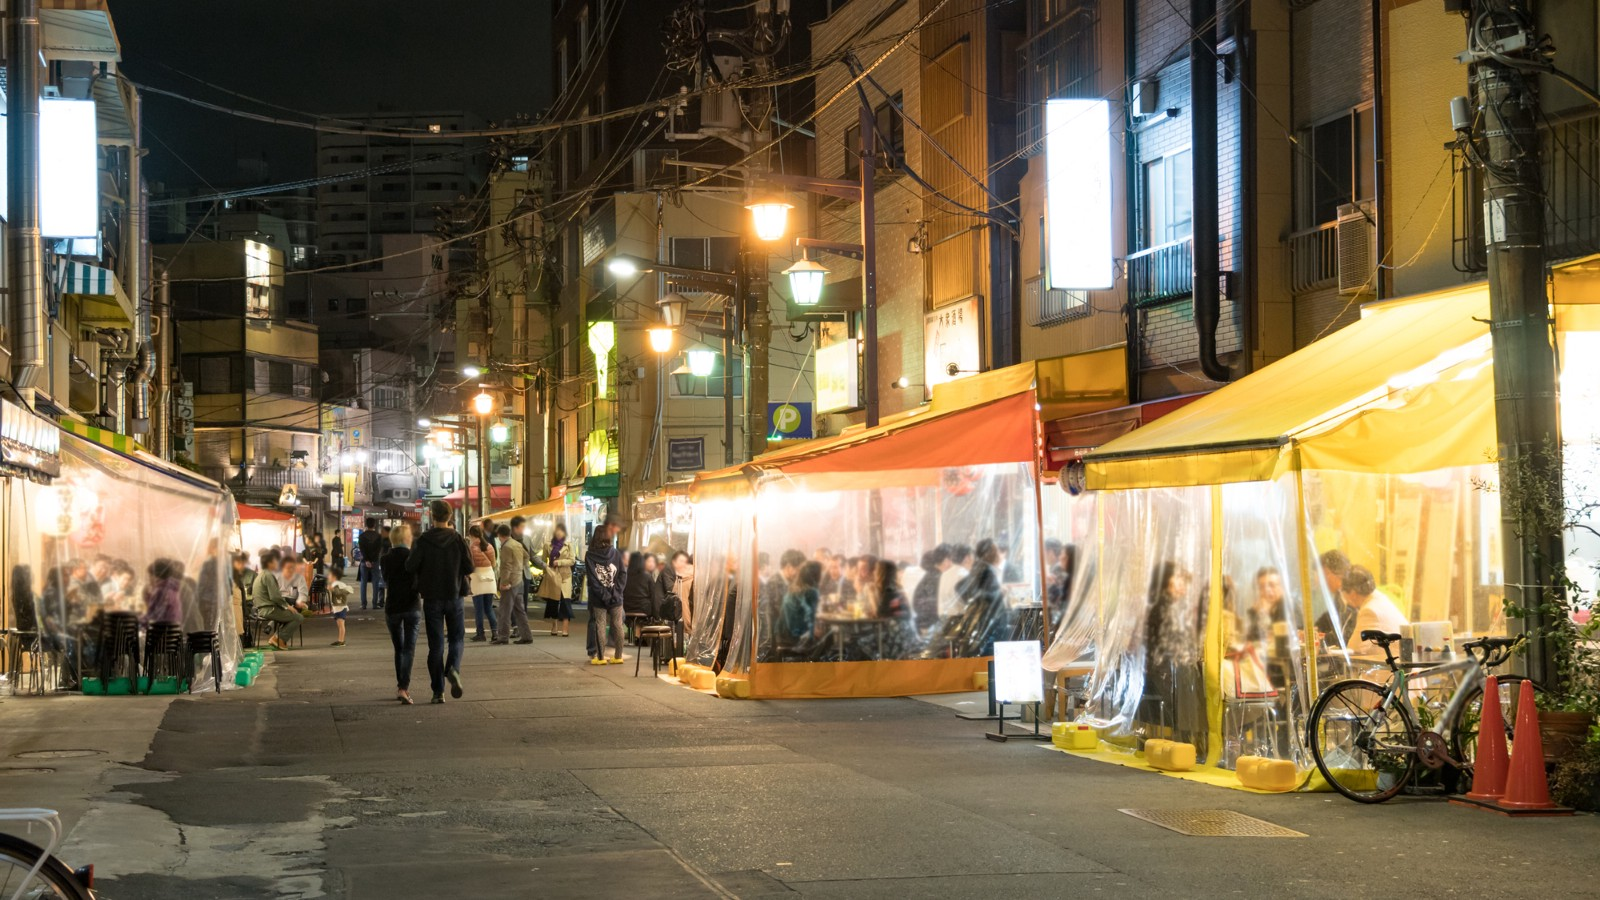 Hoppy Street in Asakusa filled by small Izakaya pubs at night